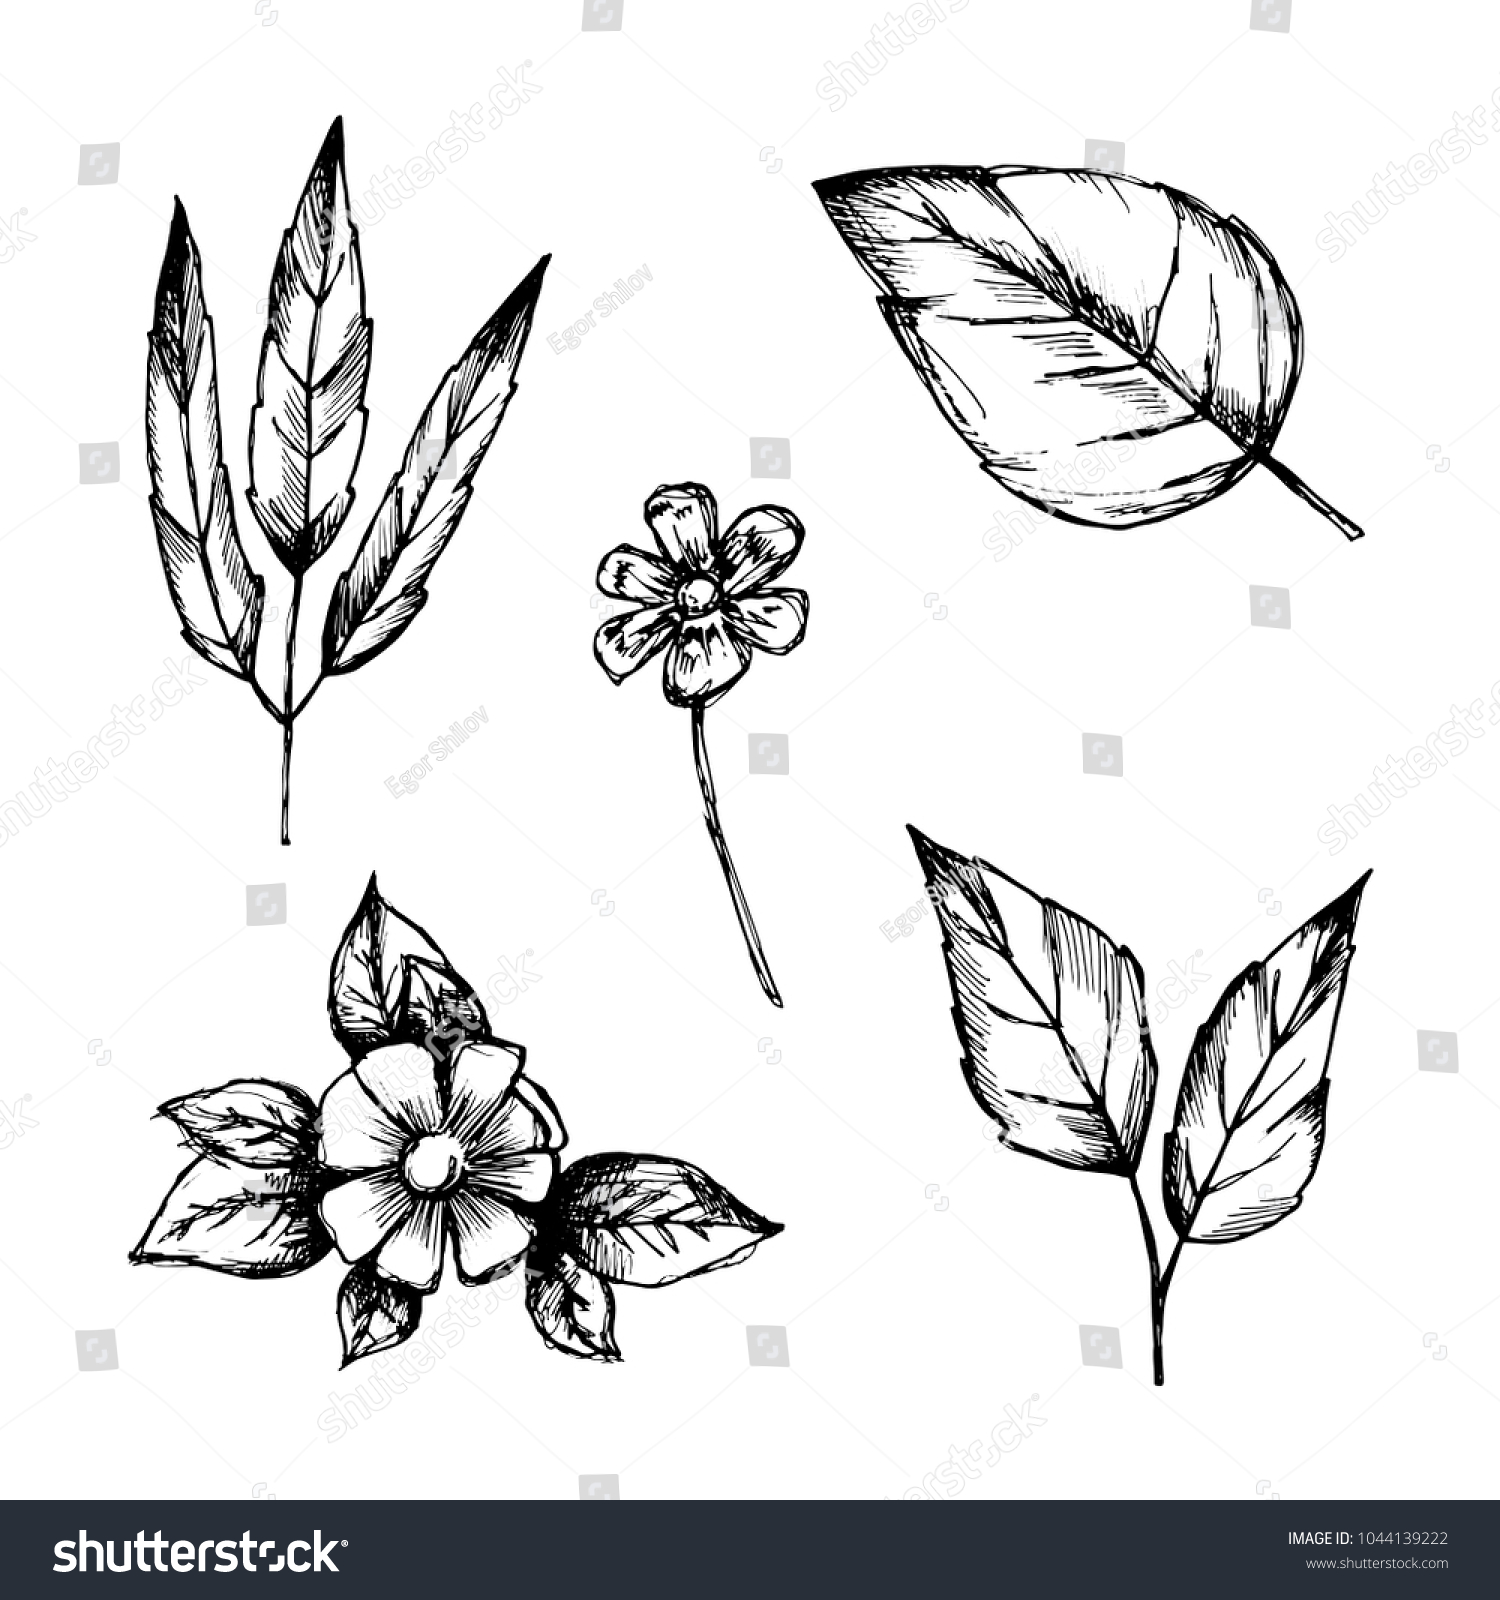 set of hand drawings isolated botanical vintage plants and flowers sketches